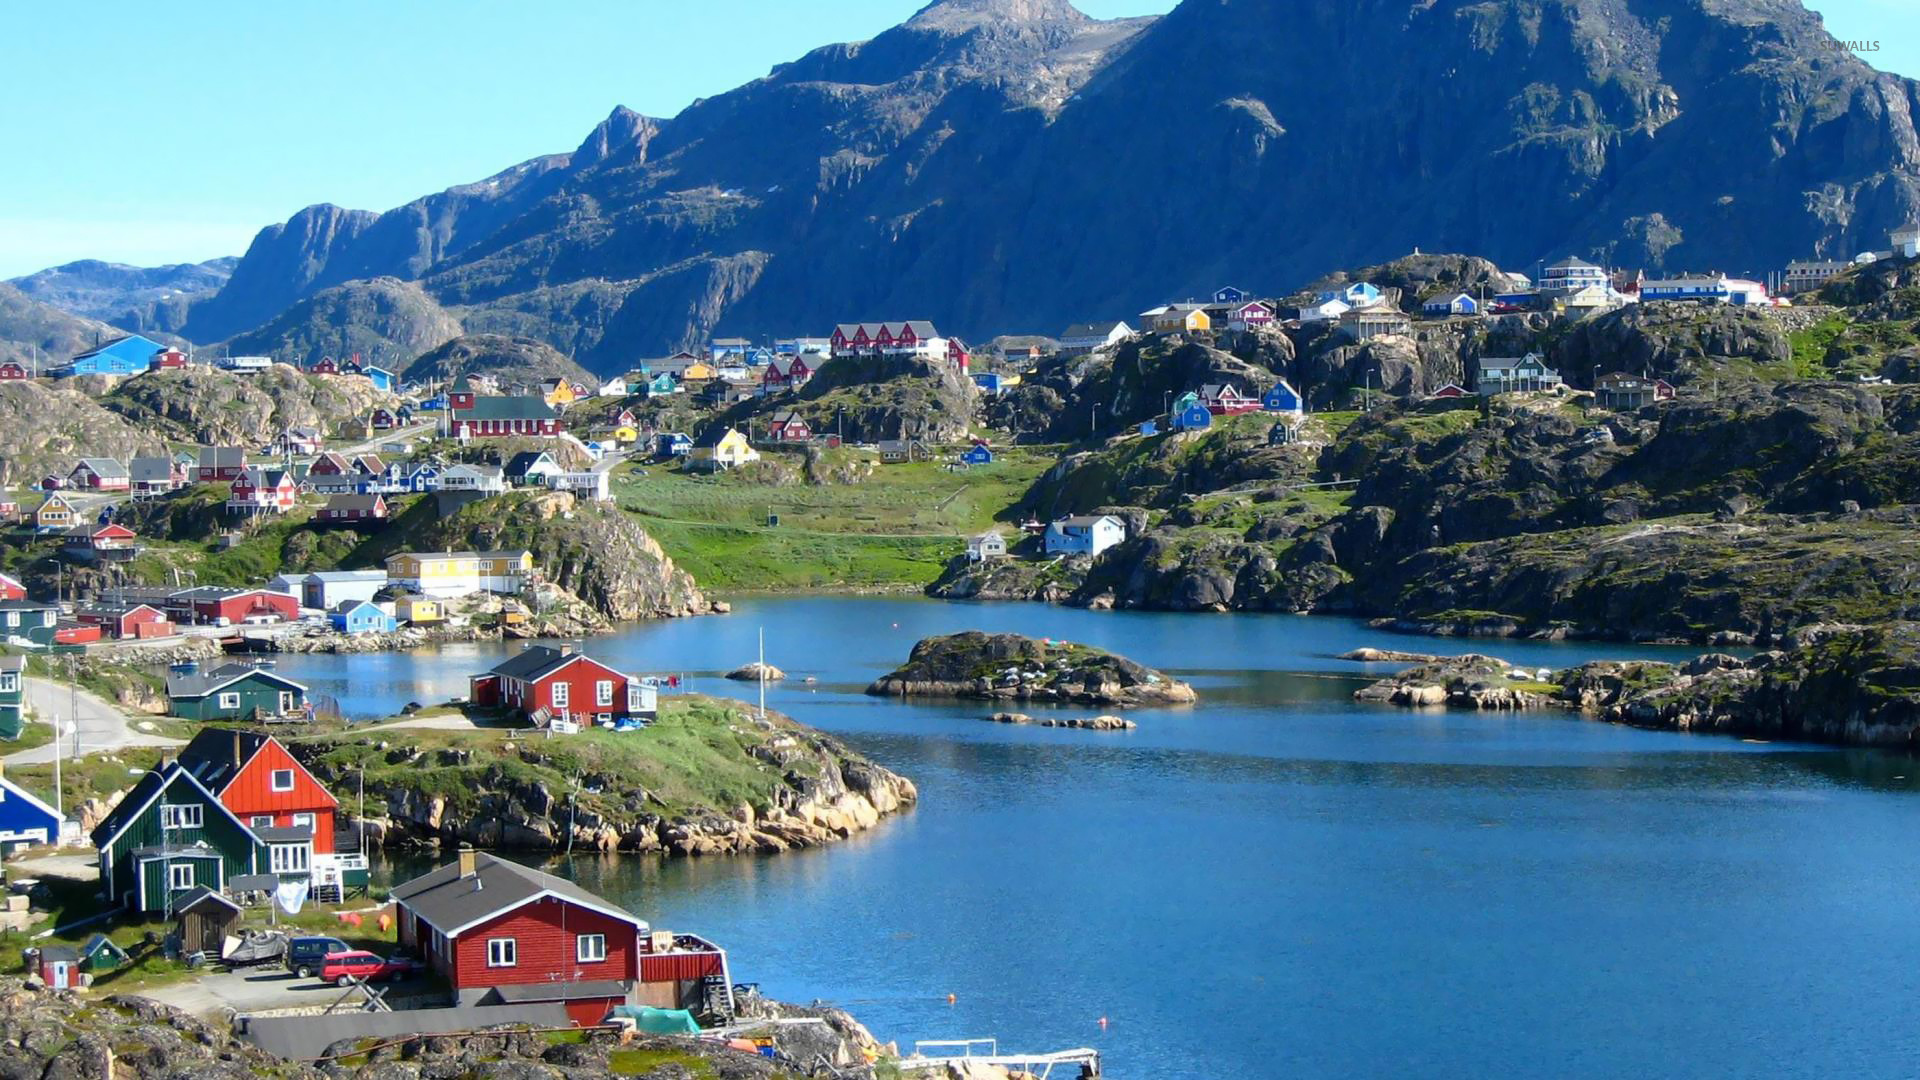 Download Nuuk Greenland Wallpaper World Wallpapers 25535 1920x1080